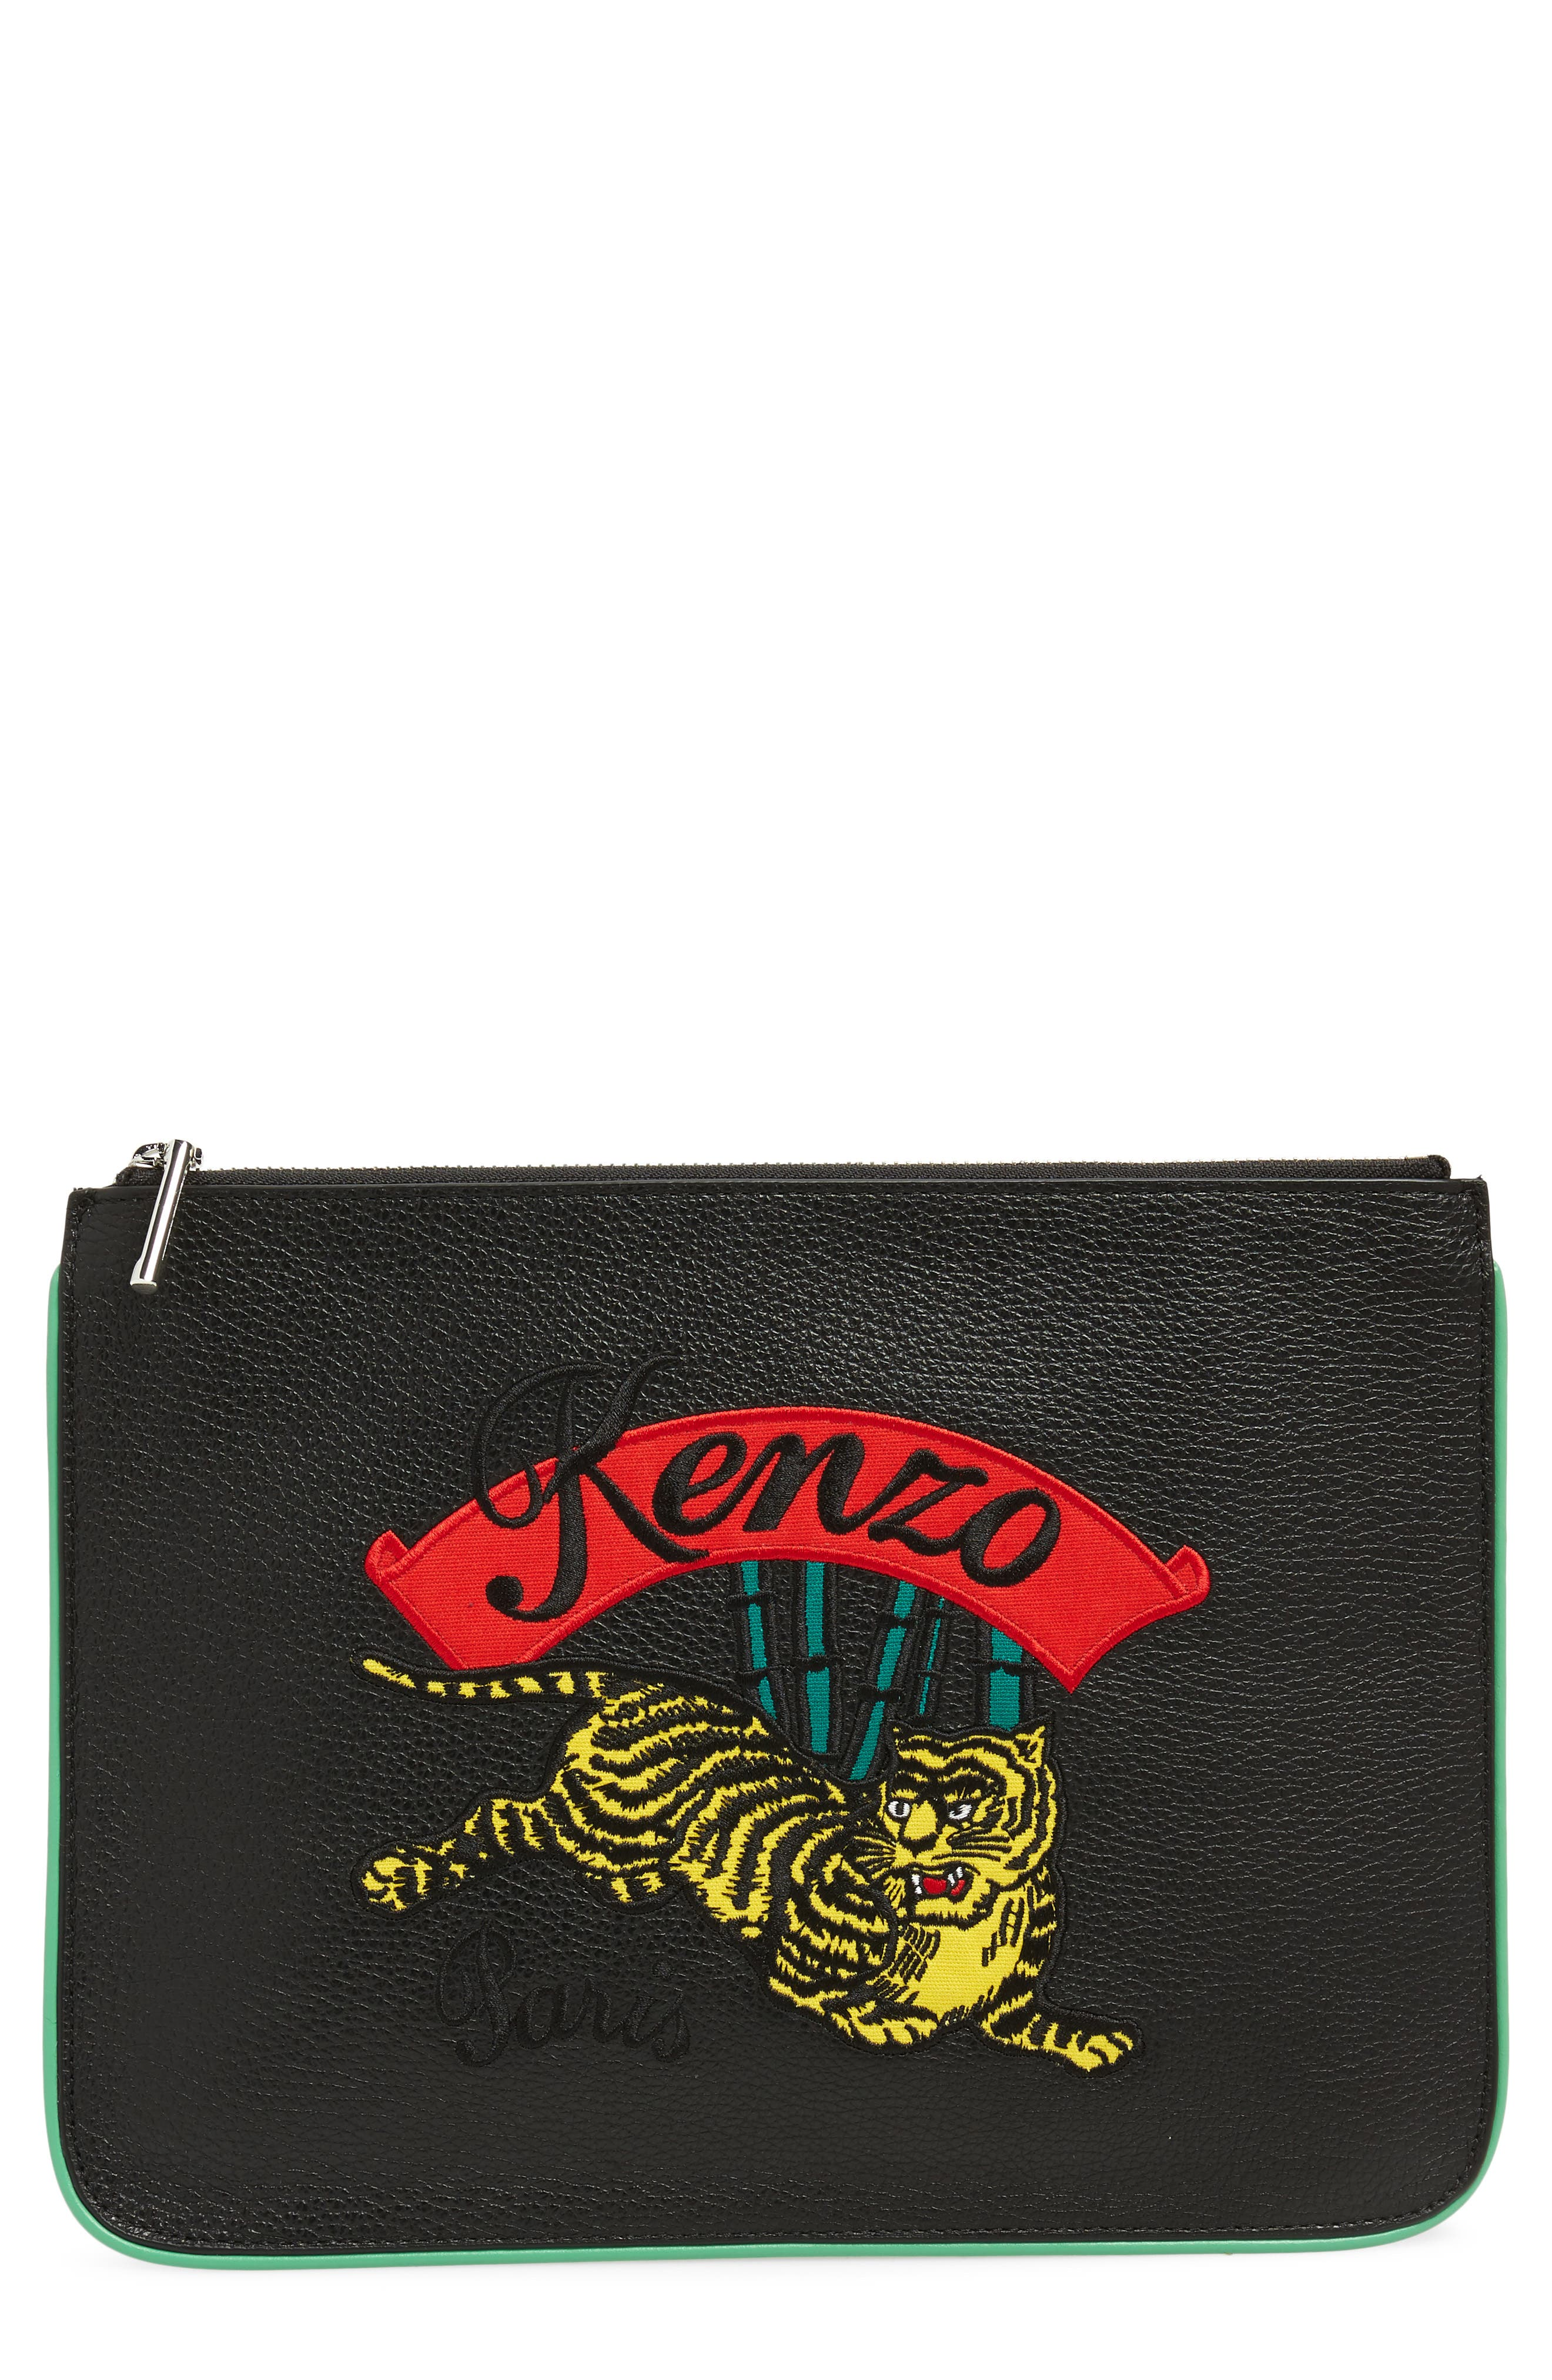 Leaping Tiger Leather A4 Pouch,                             Main thumbnail 1, color,                             BLACK